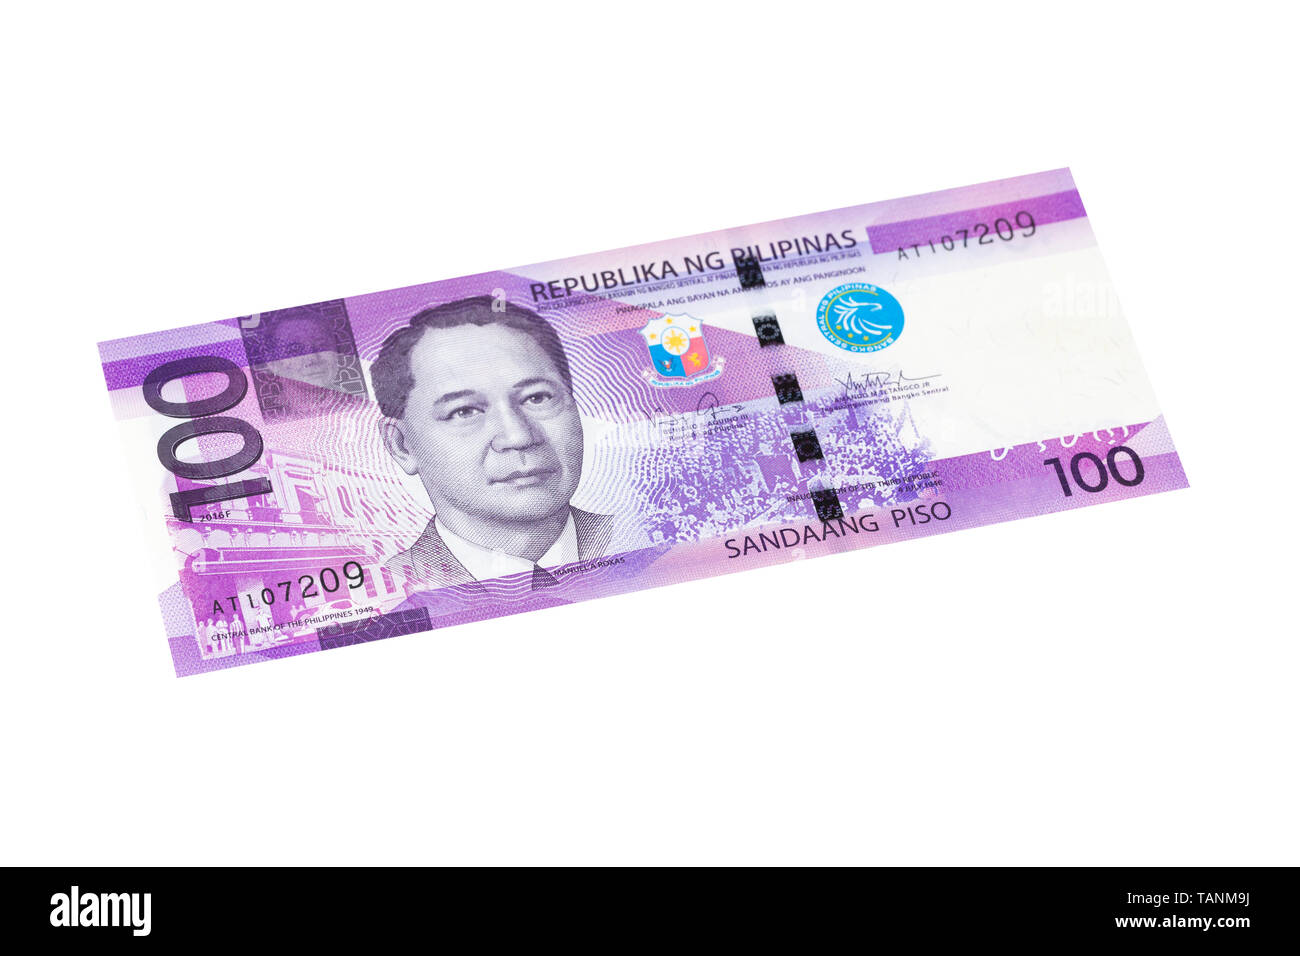 Philippine one hundred peso banknote on a white background - Stock Image